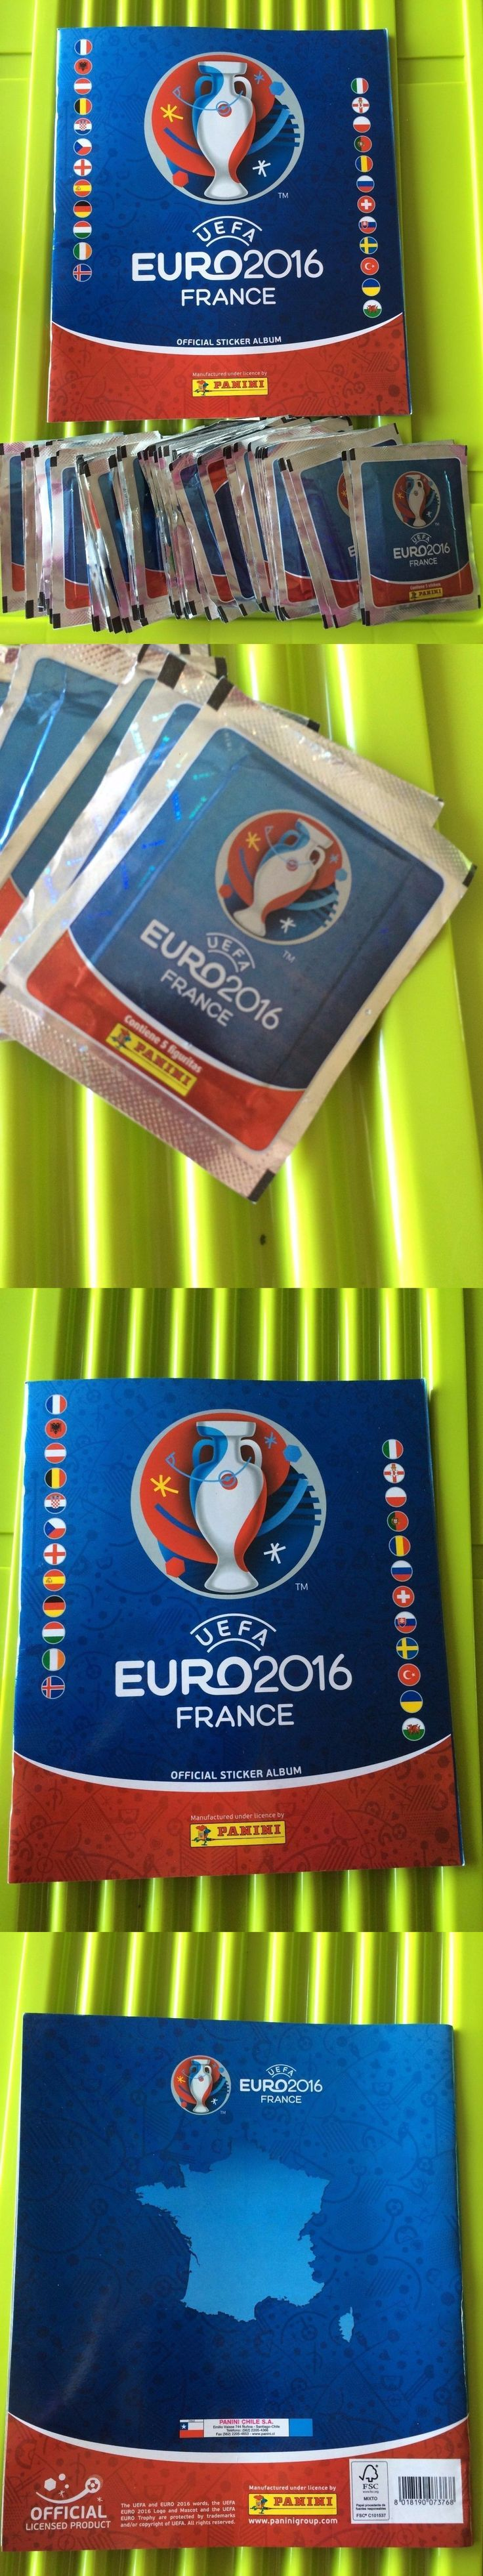 Sports Stickers Sets and Albums 141755: Panini Official Uefa Euro 2016, 50 Packs (250 Stickers) + Album Chile Version -> BUY IT NOW ONLY: $55 on eBay!